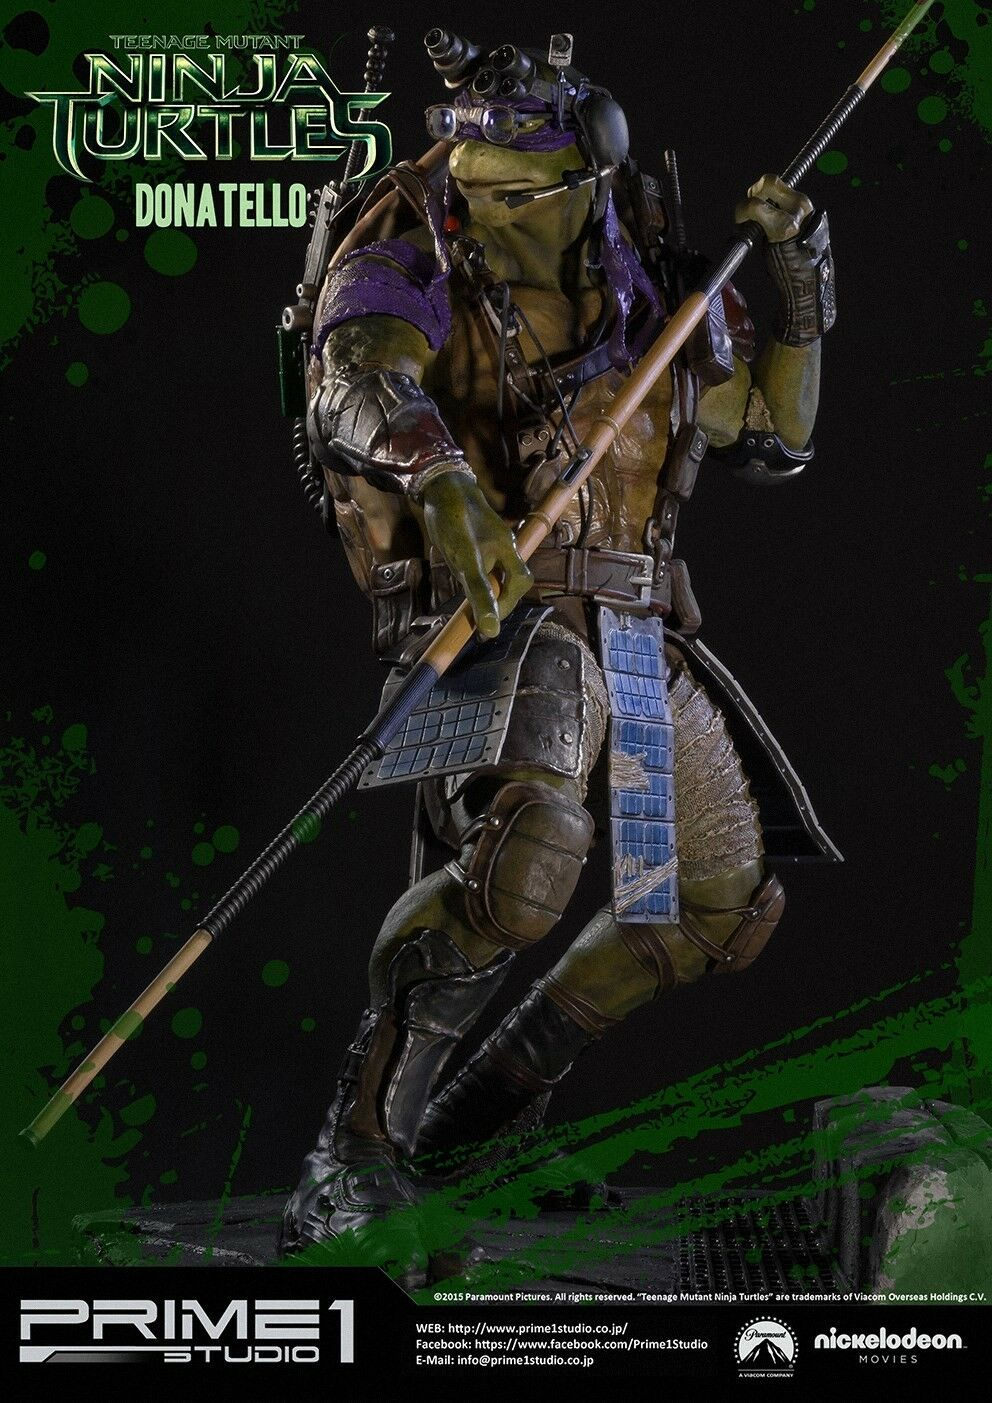 NINJA TURTLES PRIME 1 STUDIO DONATELLO SIDESHOW COLLECTIBLES